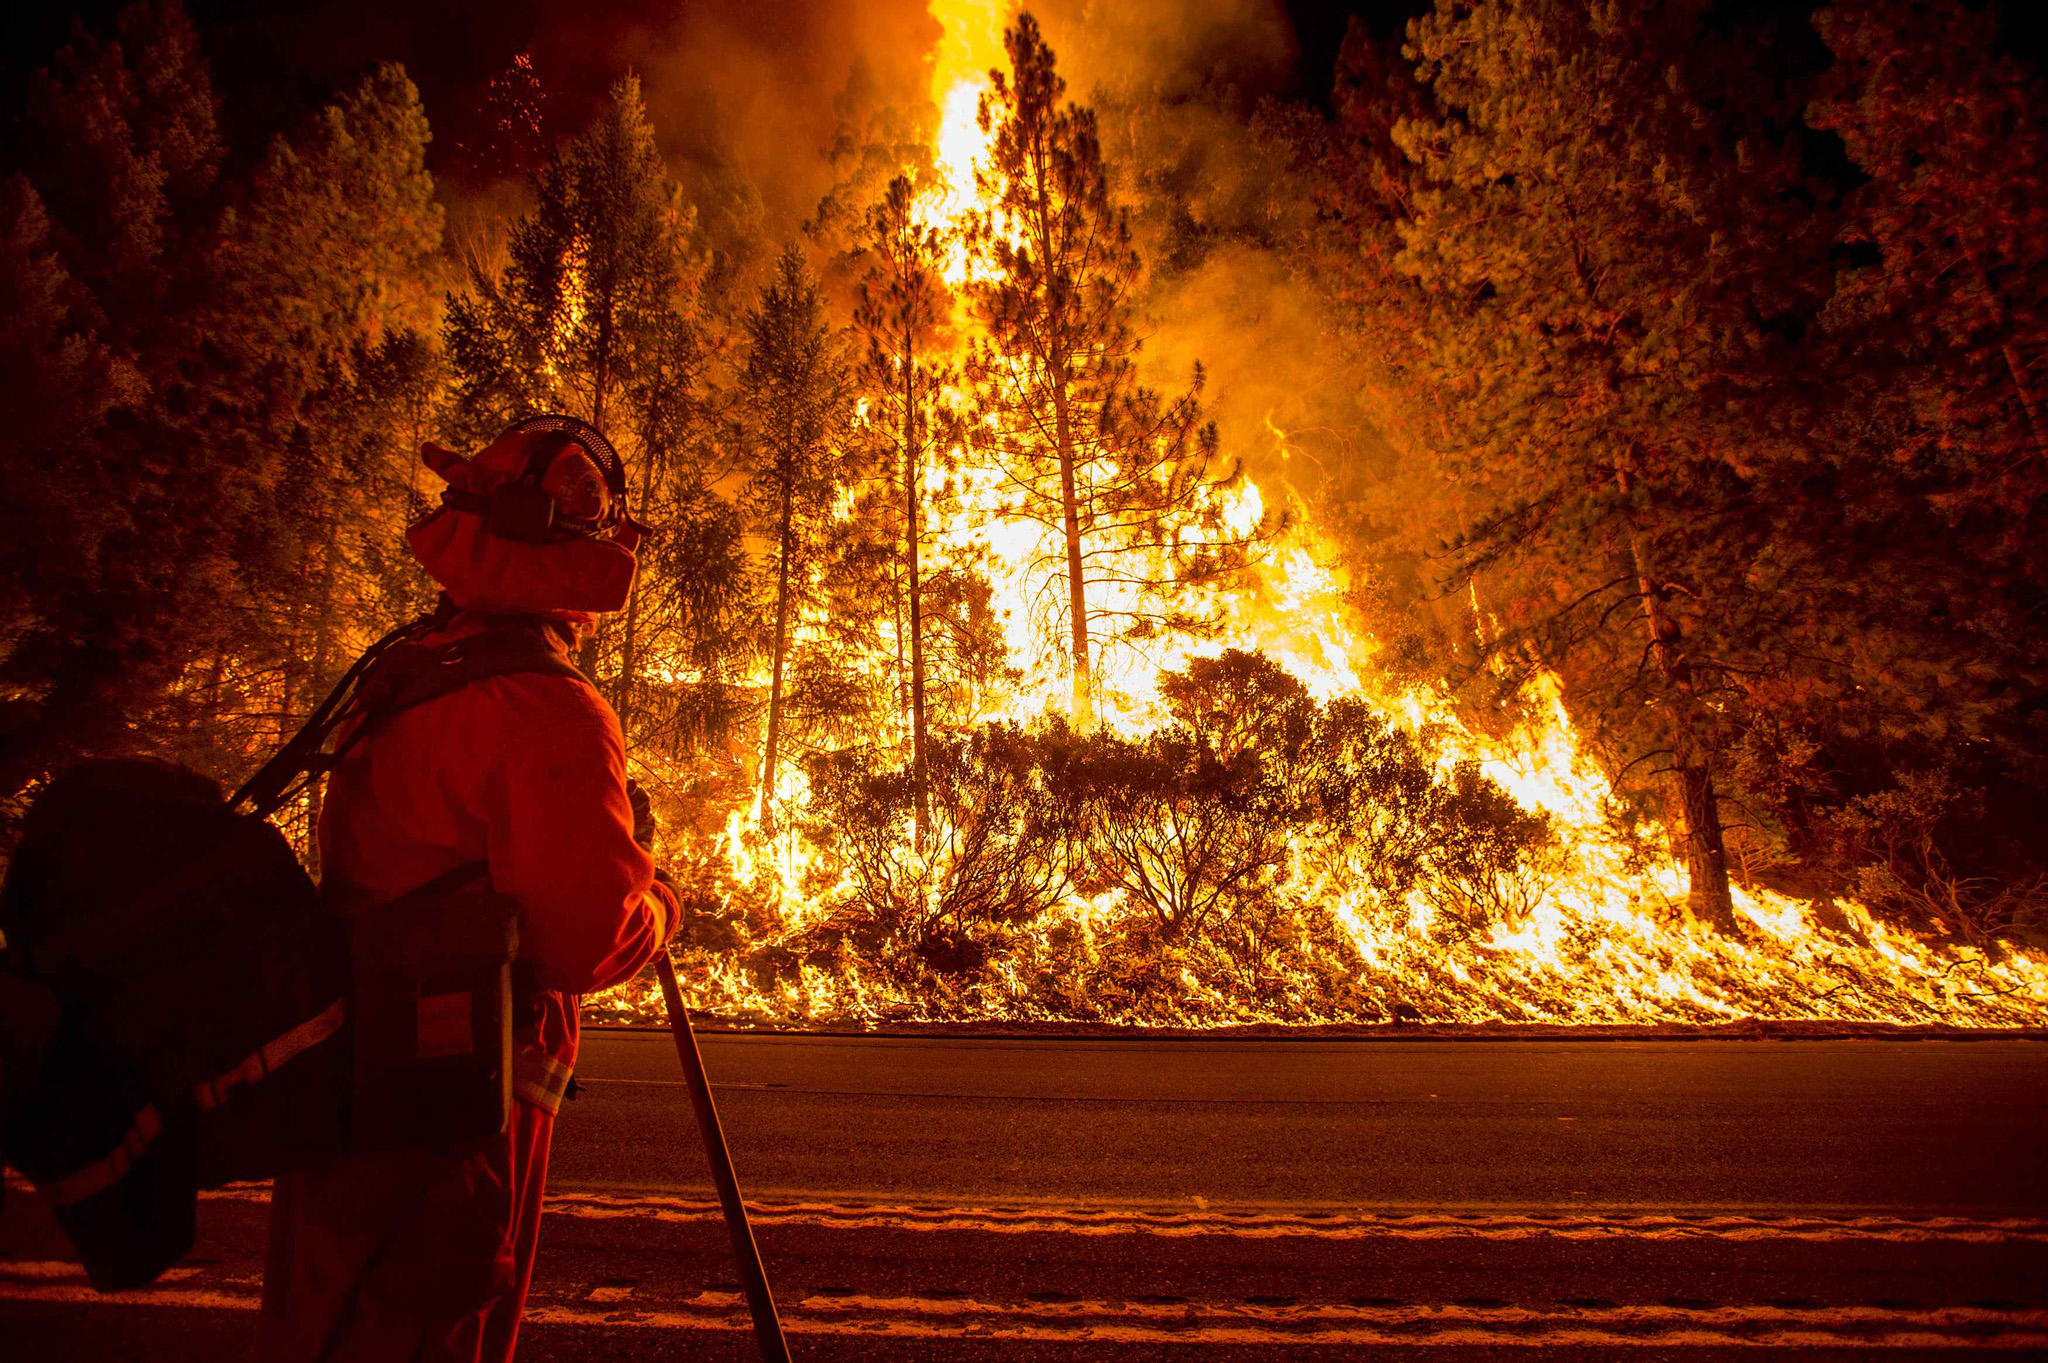 A firefighter battling the King Fire watches as a backfire burns along Highway 50 in Fresh Pond...A firefighter battling the King Fire watches as a backfire burns along Highway 50 in Fresh Pond, California September 16, 2014. The fire led officials to call on about 400 people to evacuate from areas threatened by the blaze, Cal Fire spokeswoman Alyssa Smith said. It has charred more than 11,500 acres (4,654 hectares) and was 5 percent contained on Tuesday.  REUTERS/Noah Berger  (UNITED STATES - Tags: DISASTER ENVIRONMENT)